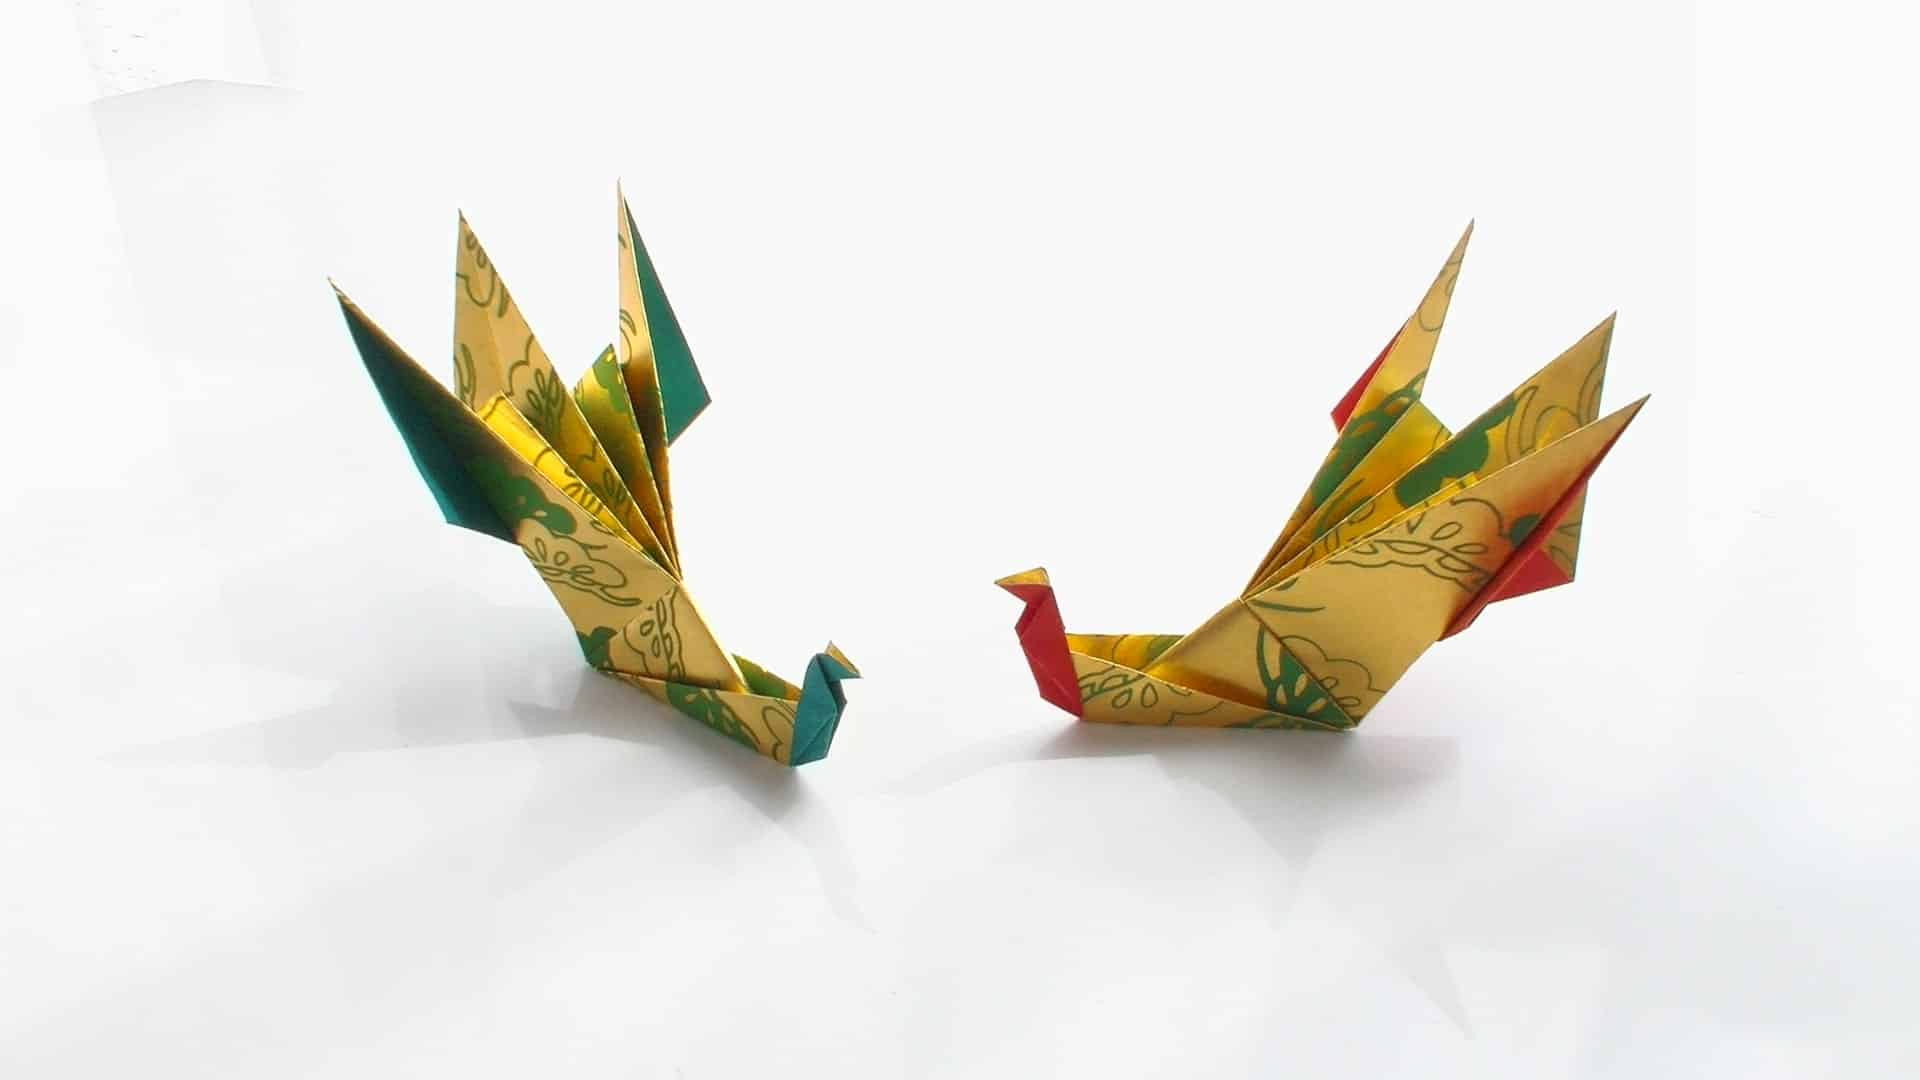 Origami floating cranes